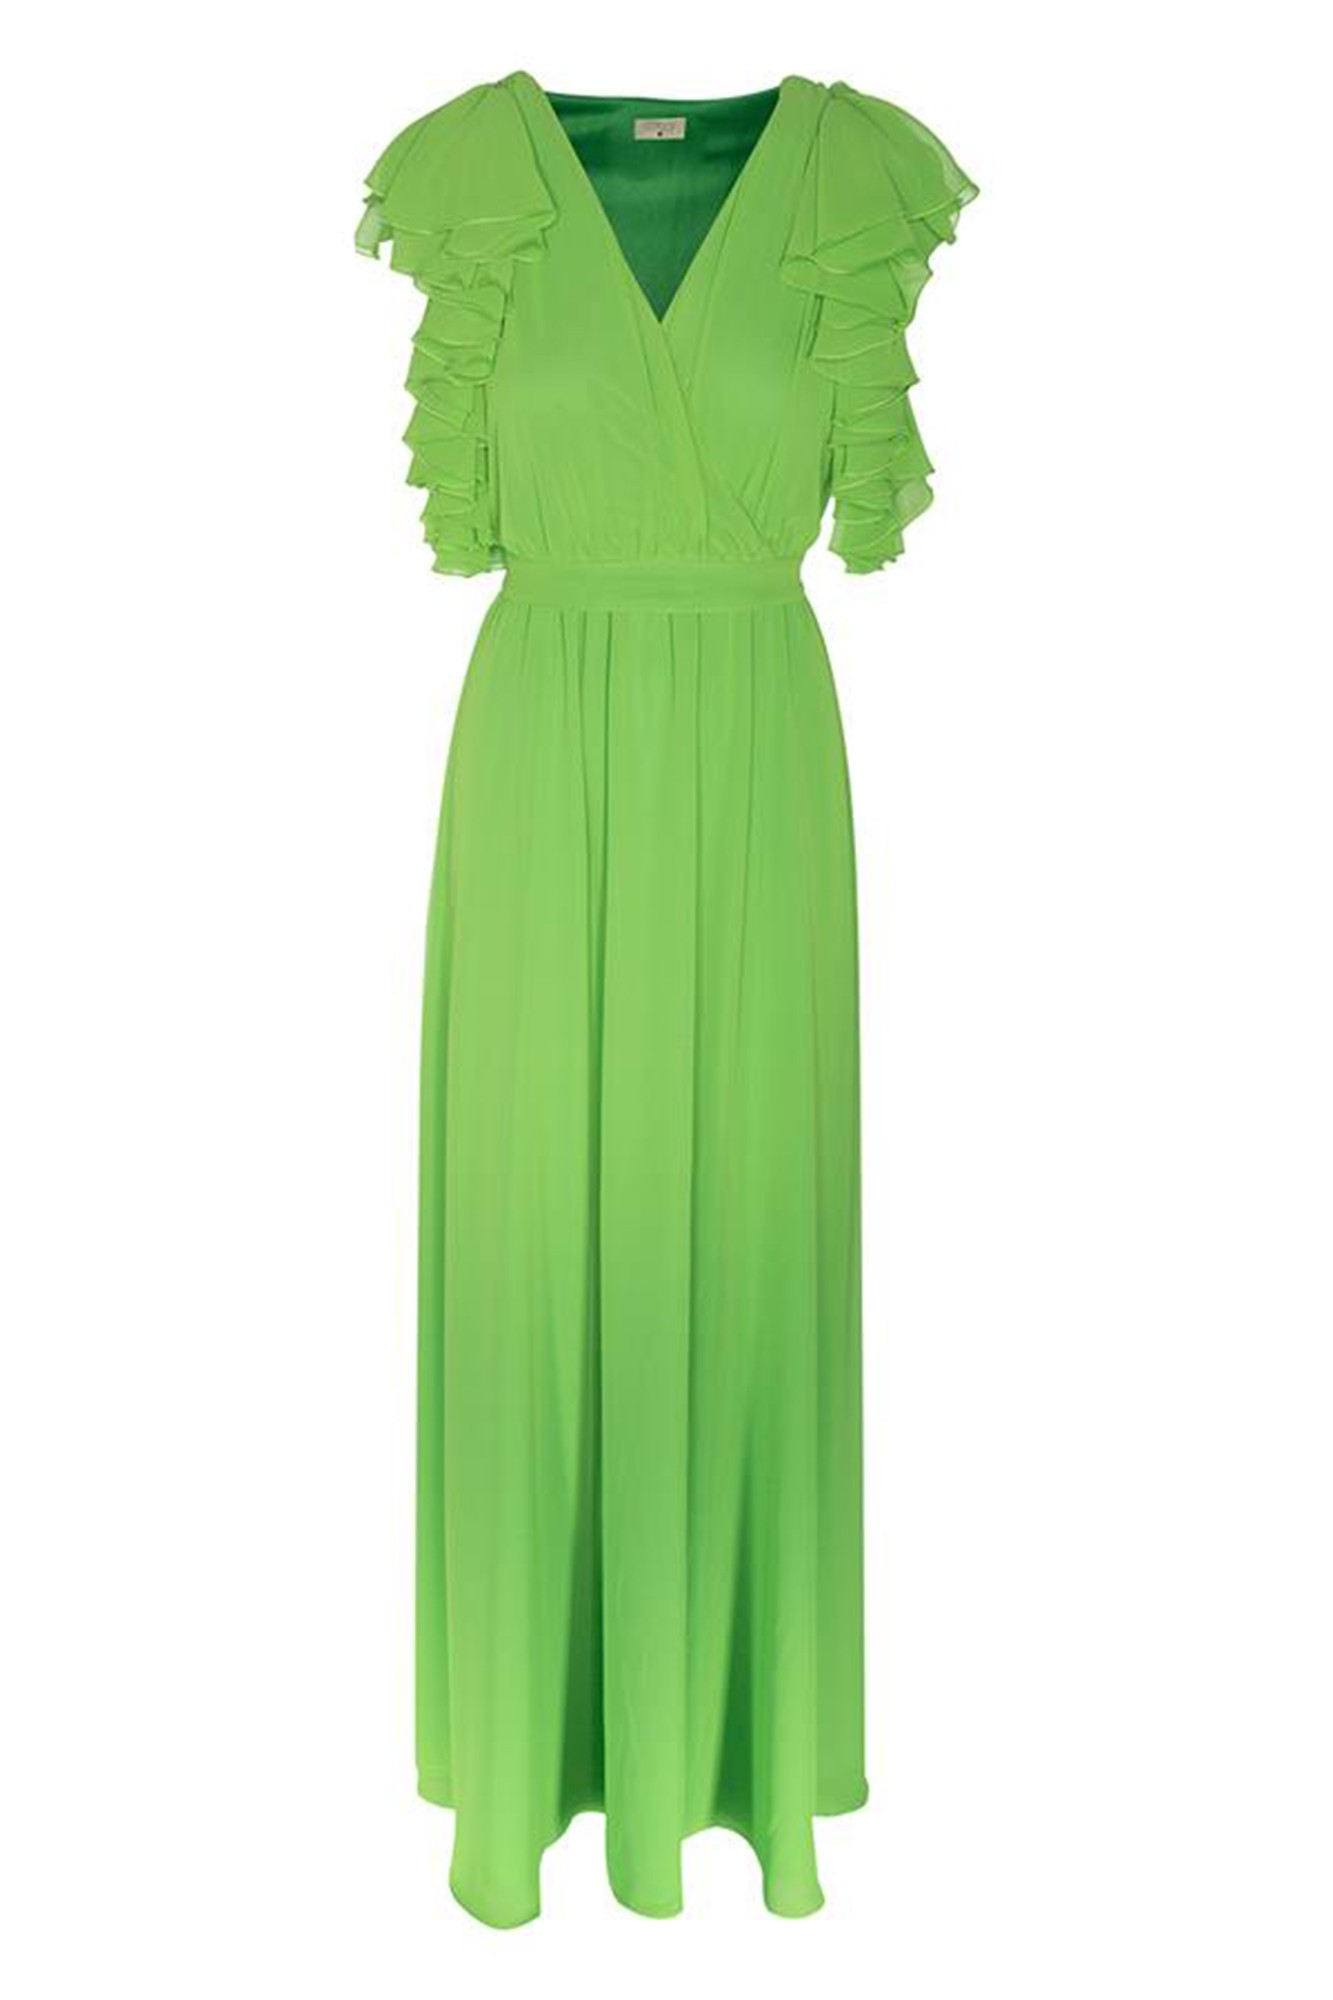 SIEMP GREEN DRESS